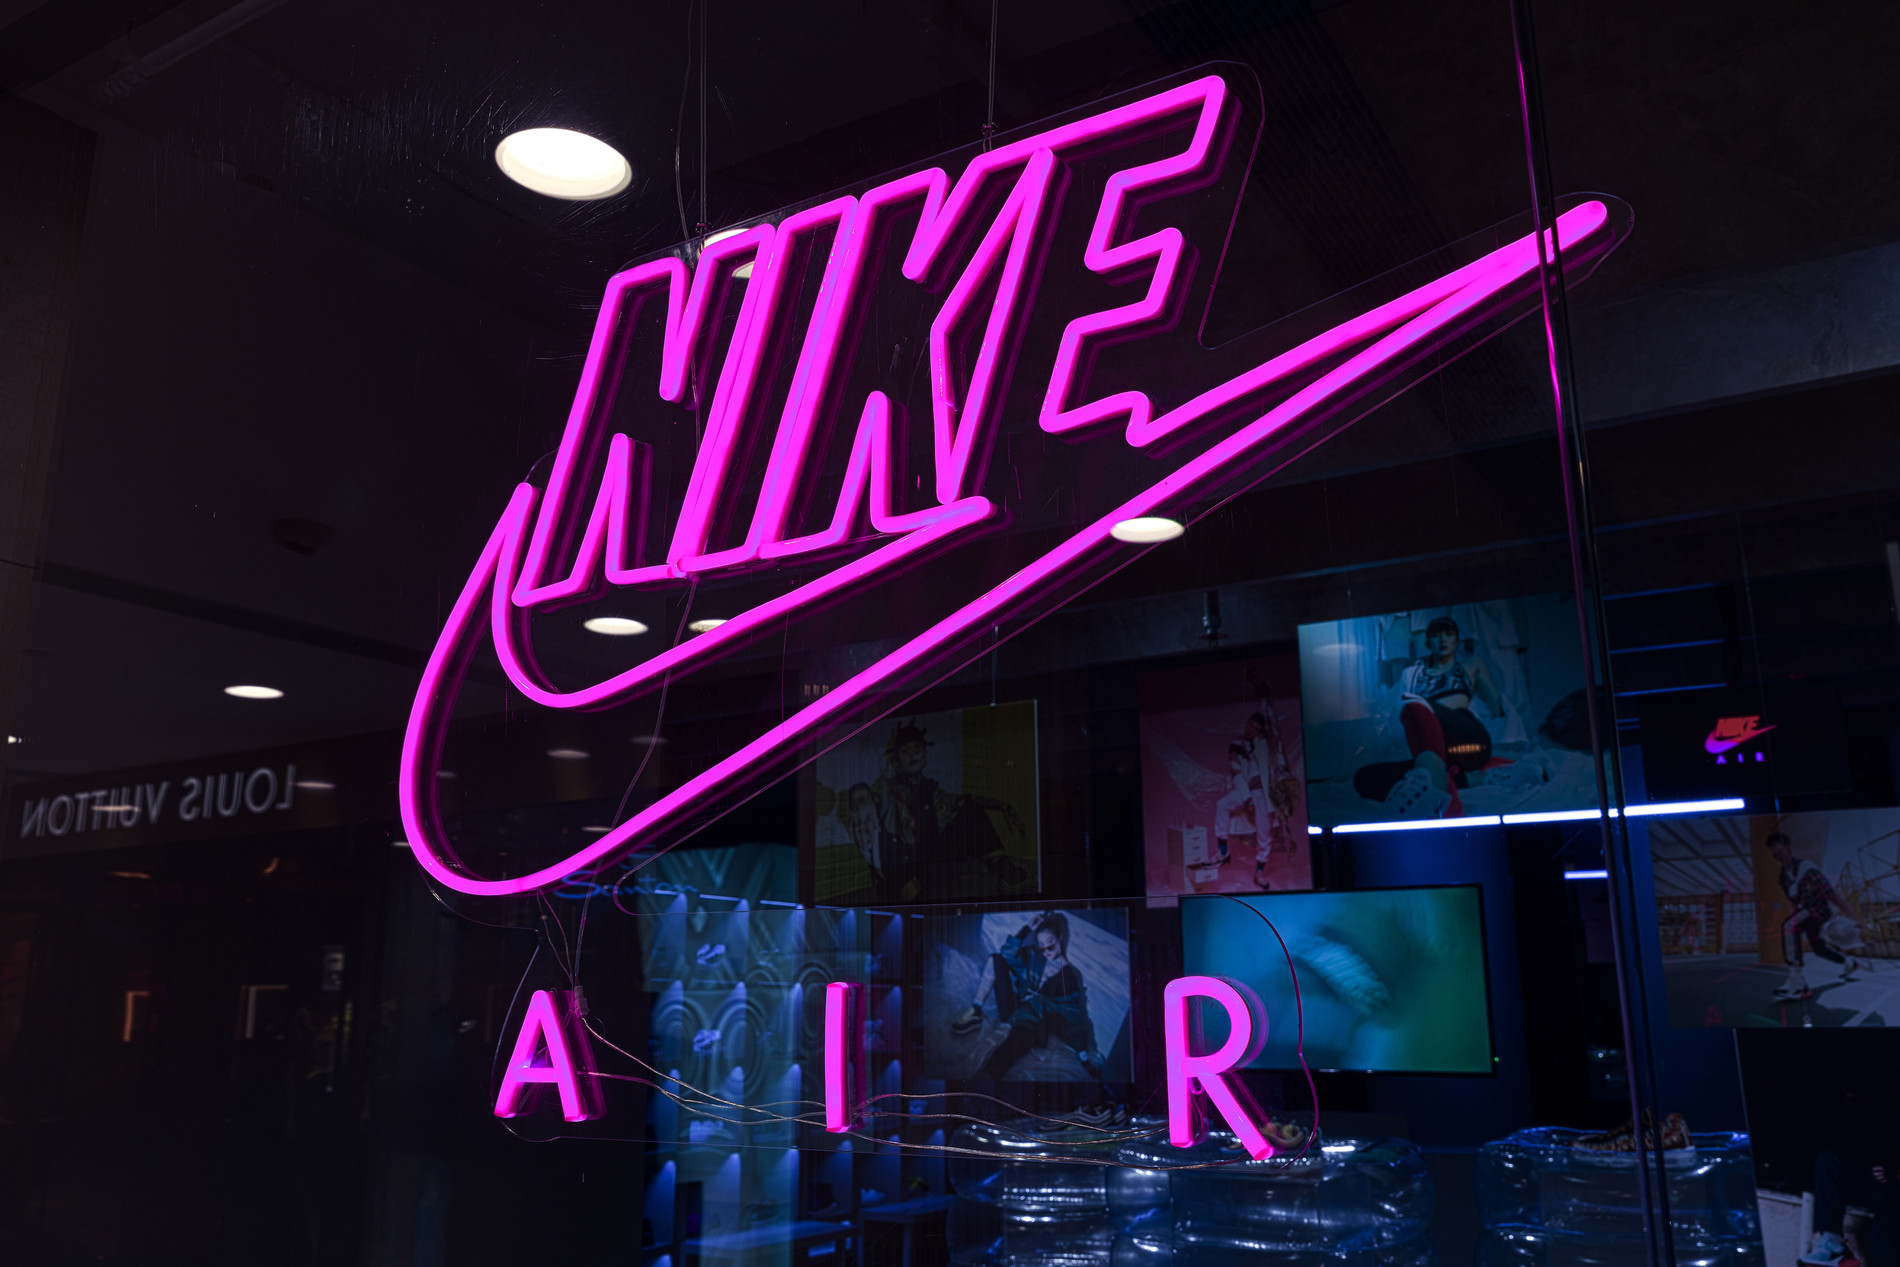 Nike Air Max Day 2018 Installation